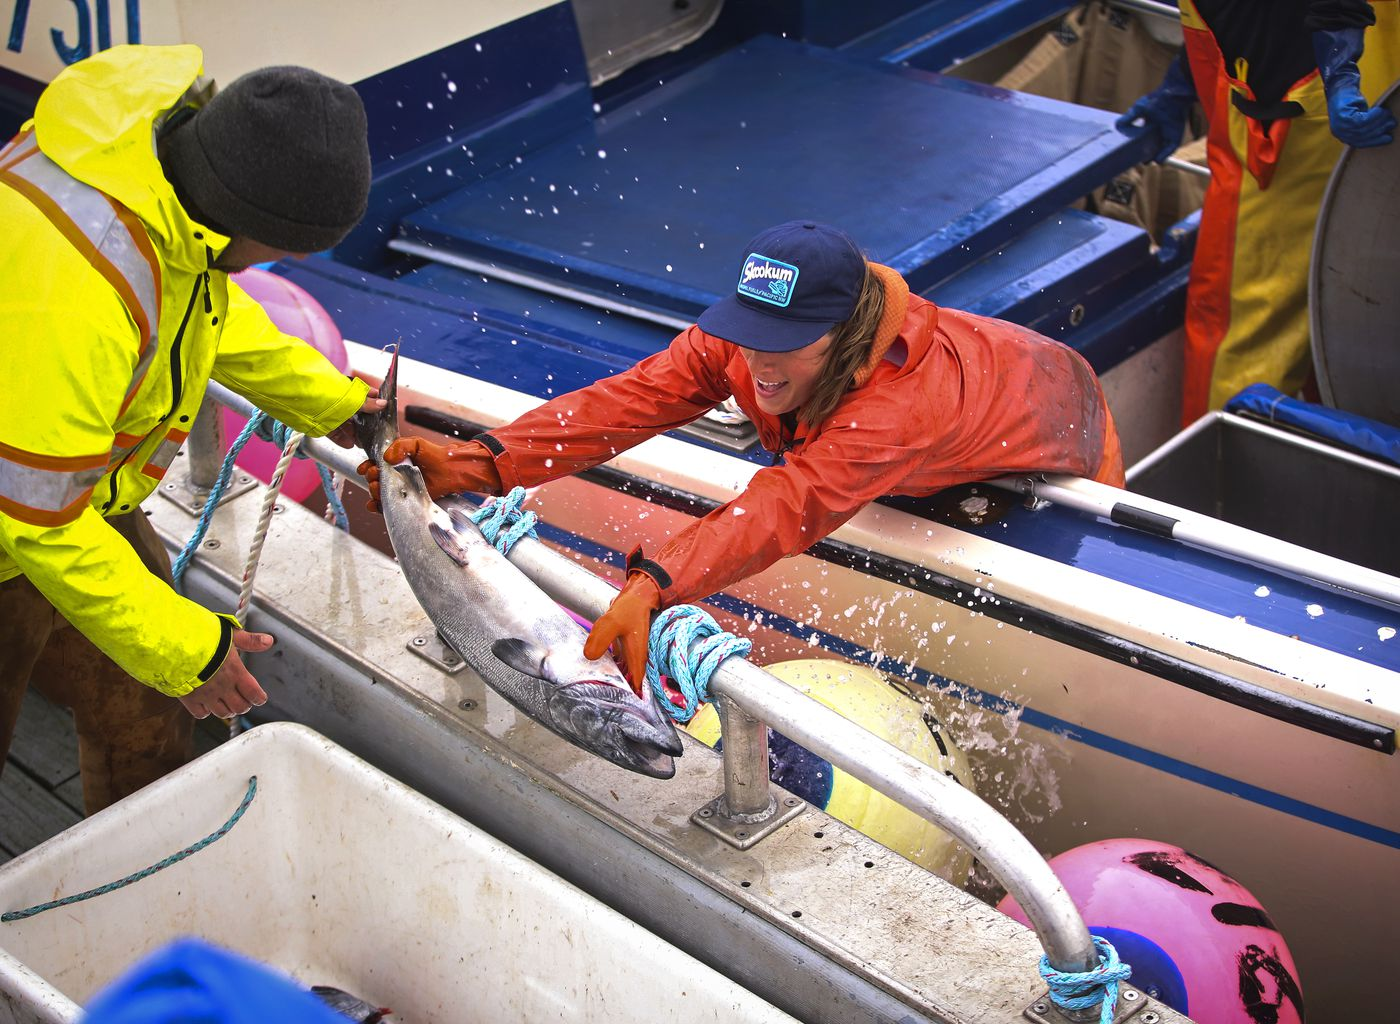 Nelly Hand gives a Copper River king salmon to Ezekiel Brown, captain of the F/V Lucid Dream, while offloading salmon to his tender before heading back to Cordova on Thursday, May 20, 2021. (Emily Mesner / ADN)